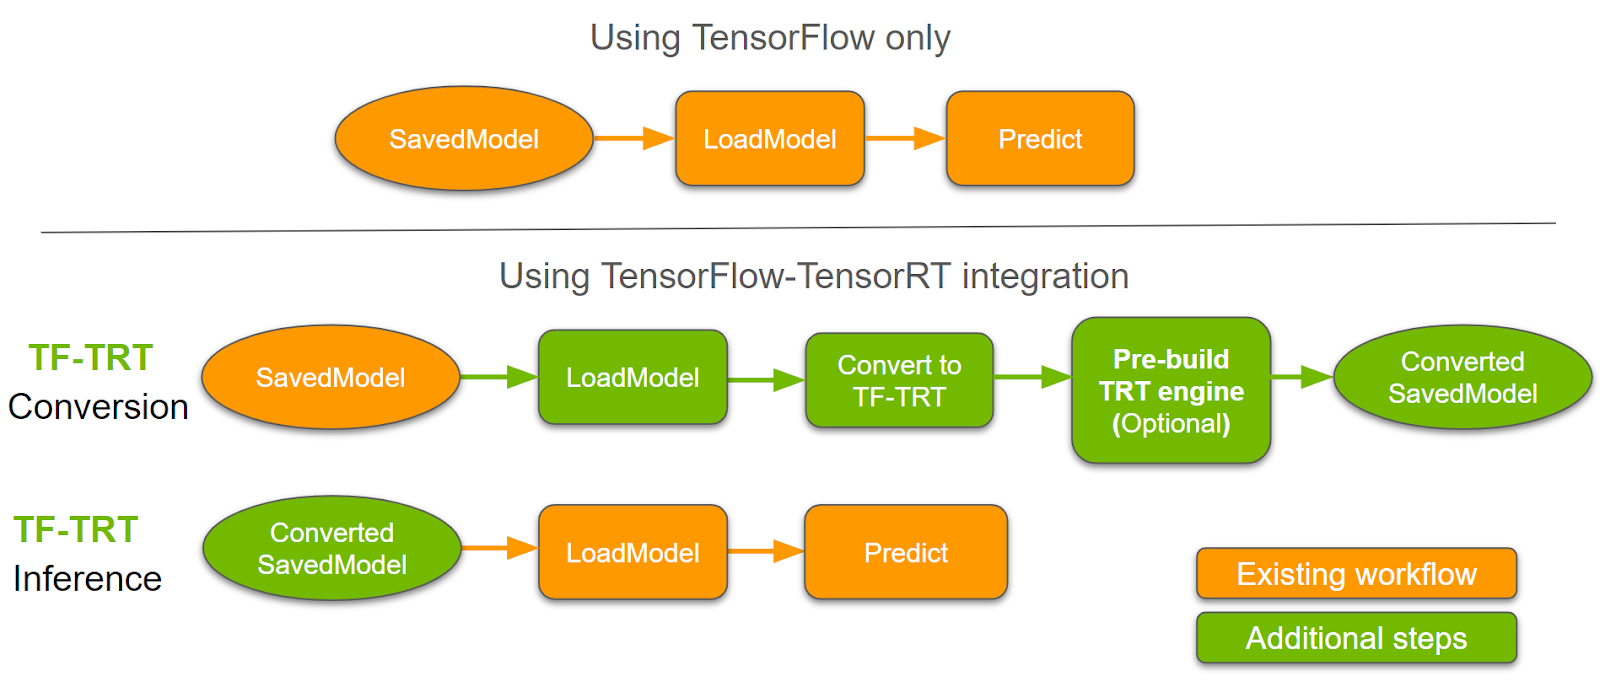 Workflow diagram when performing inference in TensorFlow only, and in TensorFlow-TensorRT using a converted SavedModel